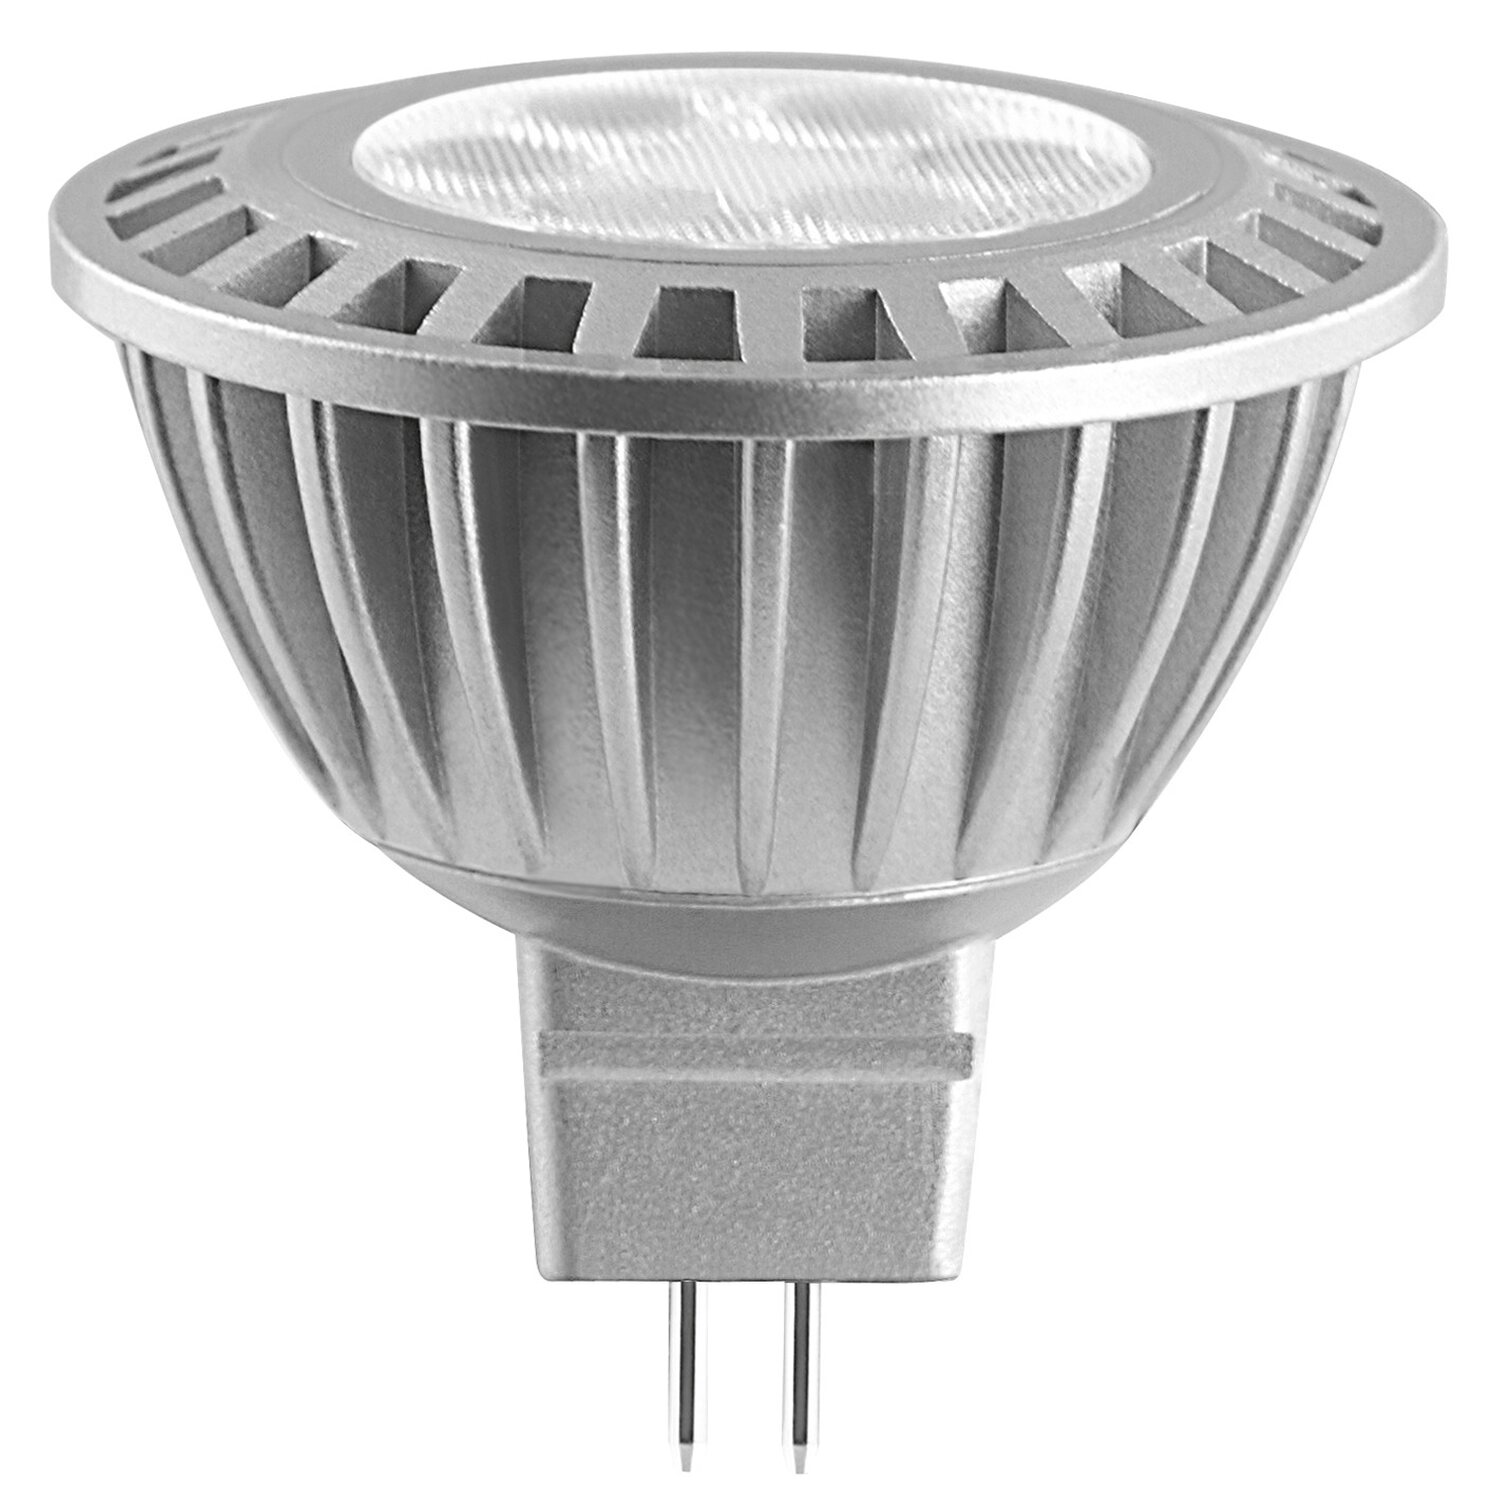 Osram led lampe reflektor mr16 gu53 7 w 350 lm warmwei eek vollbild parisarafo Image collections